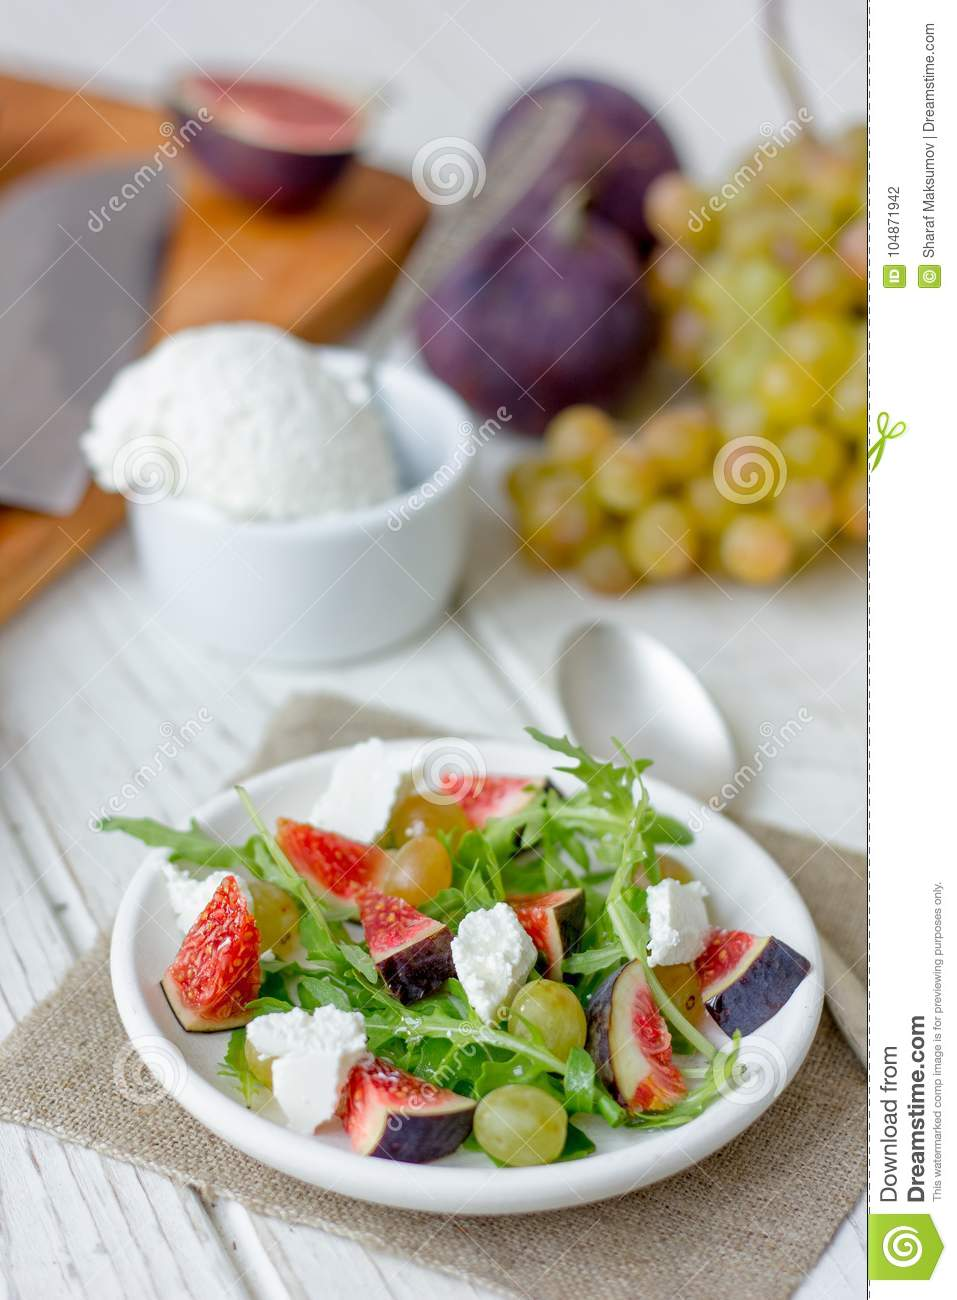 Salad with goat chees, arugula and figs.